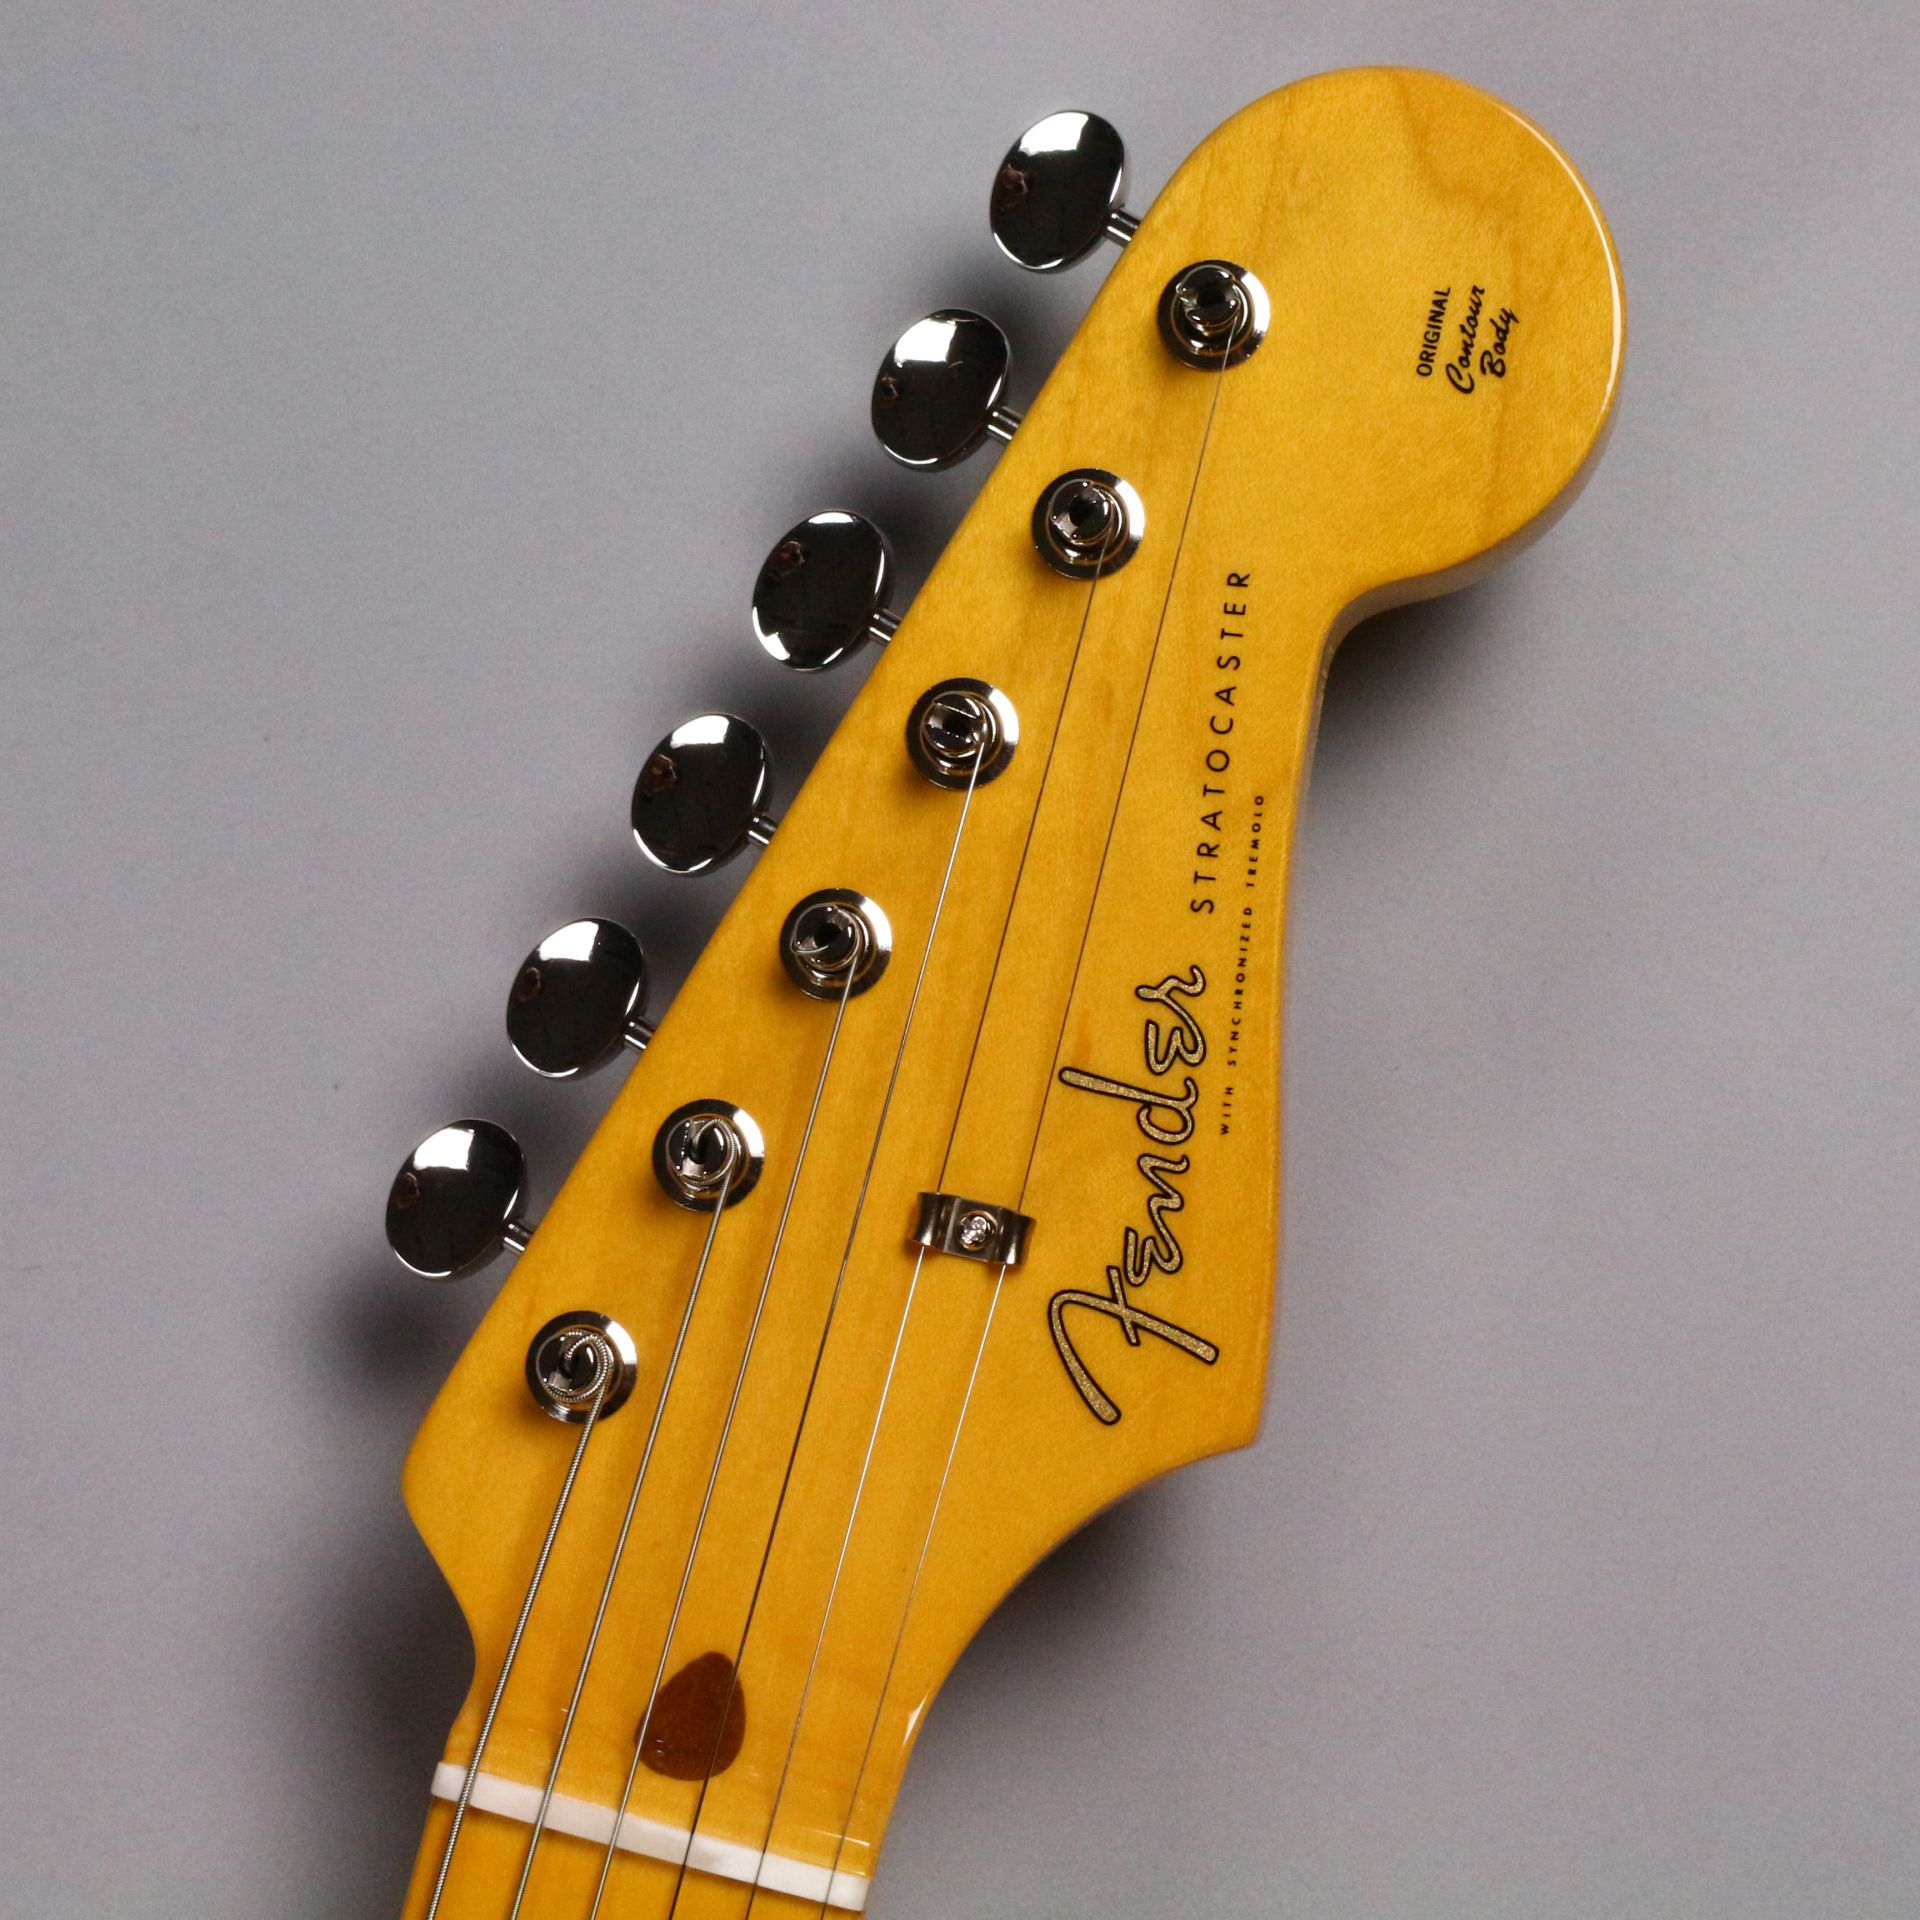 TRADITIONAL 58 STRATOCASTER(MADE IN JAPAN)のヘッド画像